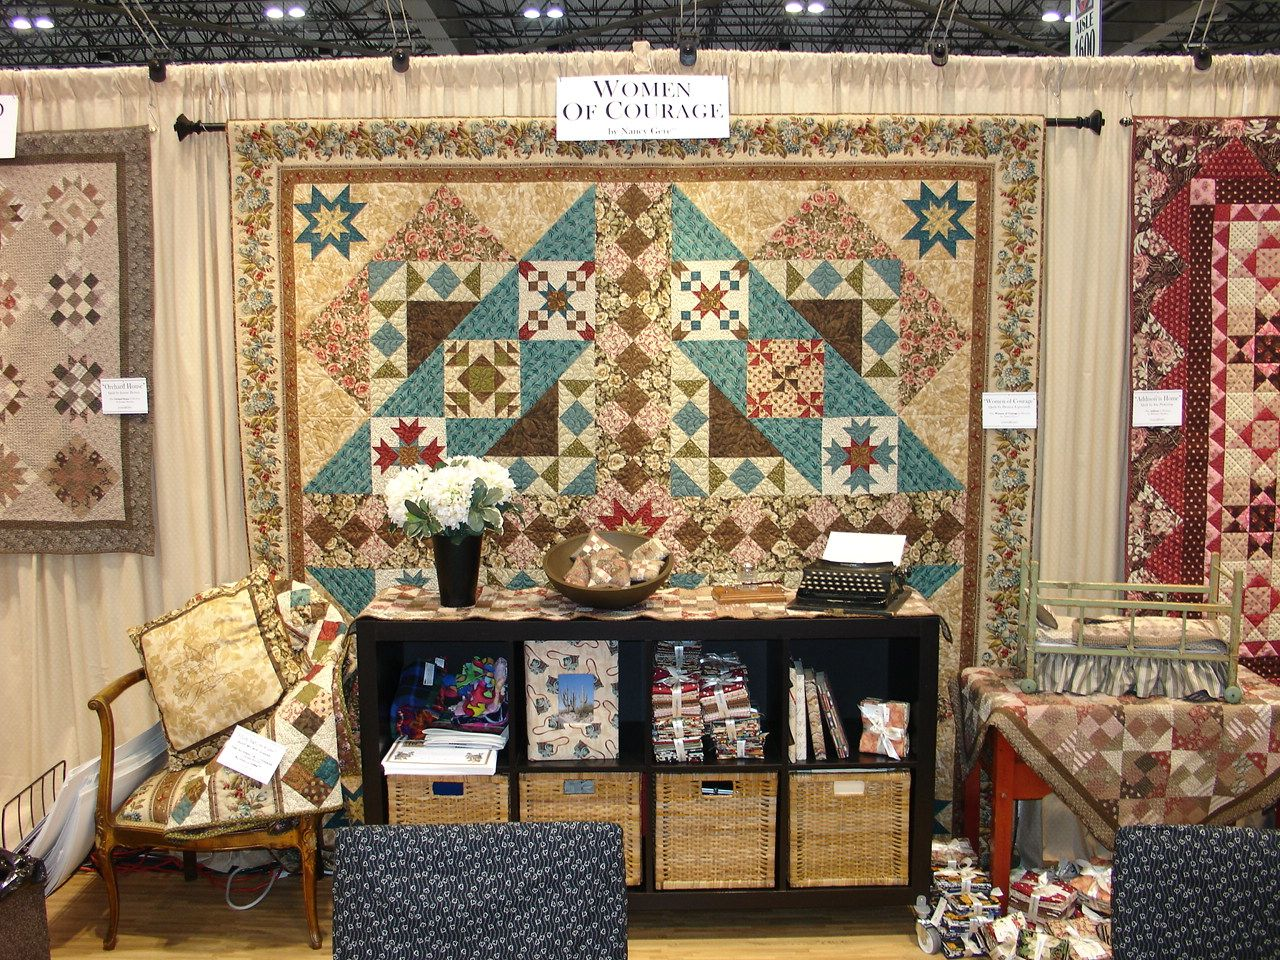 BEAUTIFUL! Women of Courage Quilt at the Windham booth at quilt market 2012.